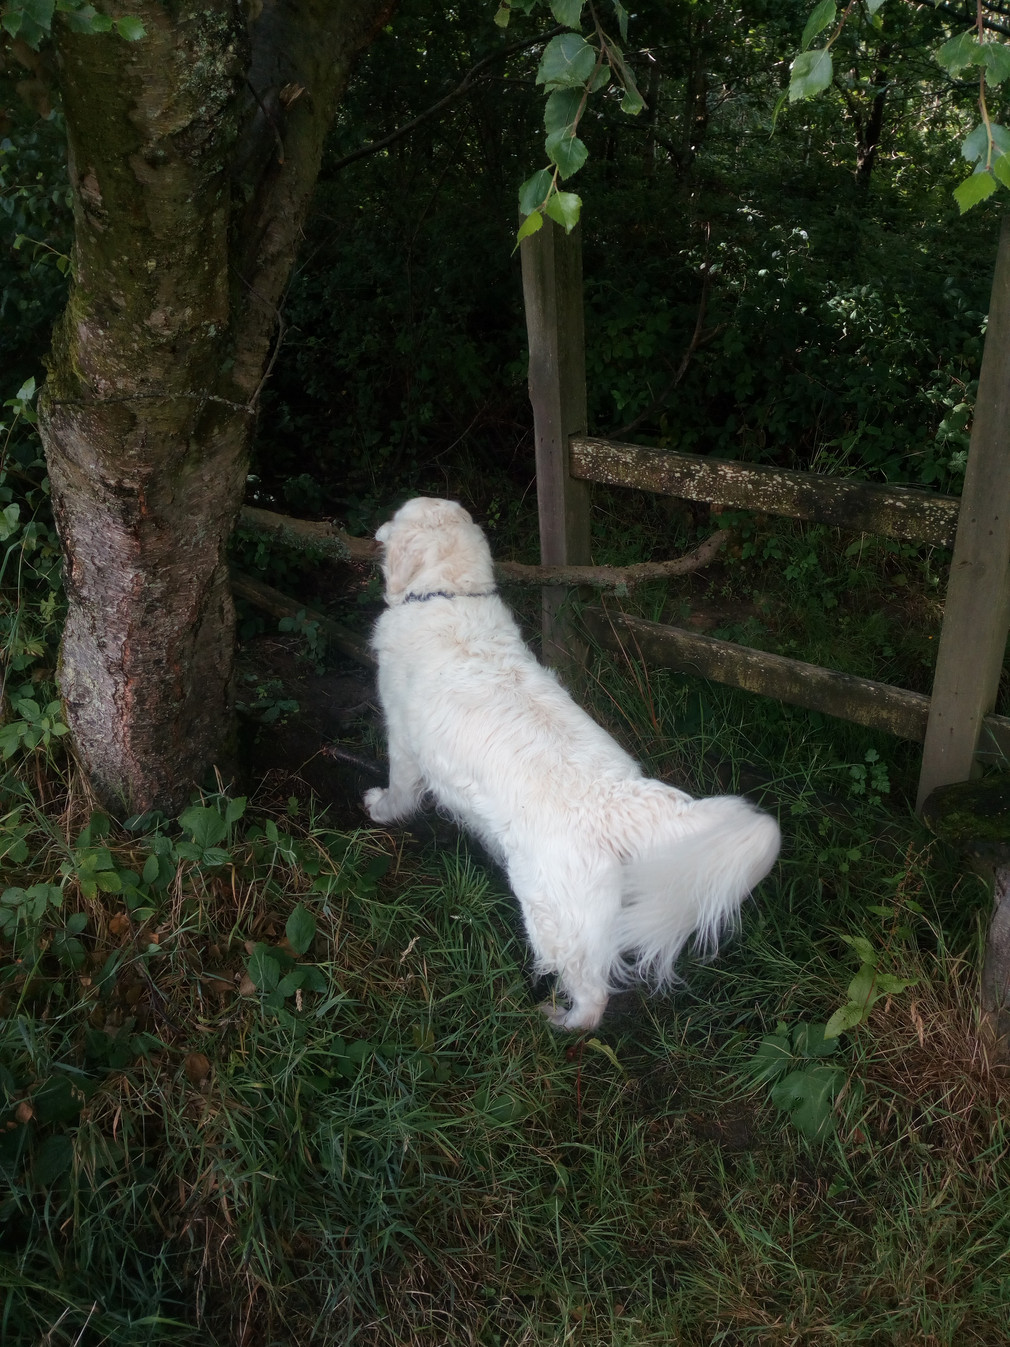 Is he going to get the stick through the gap?